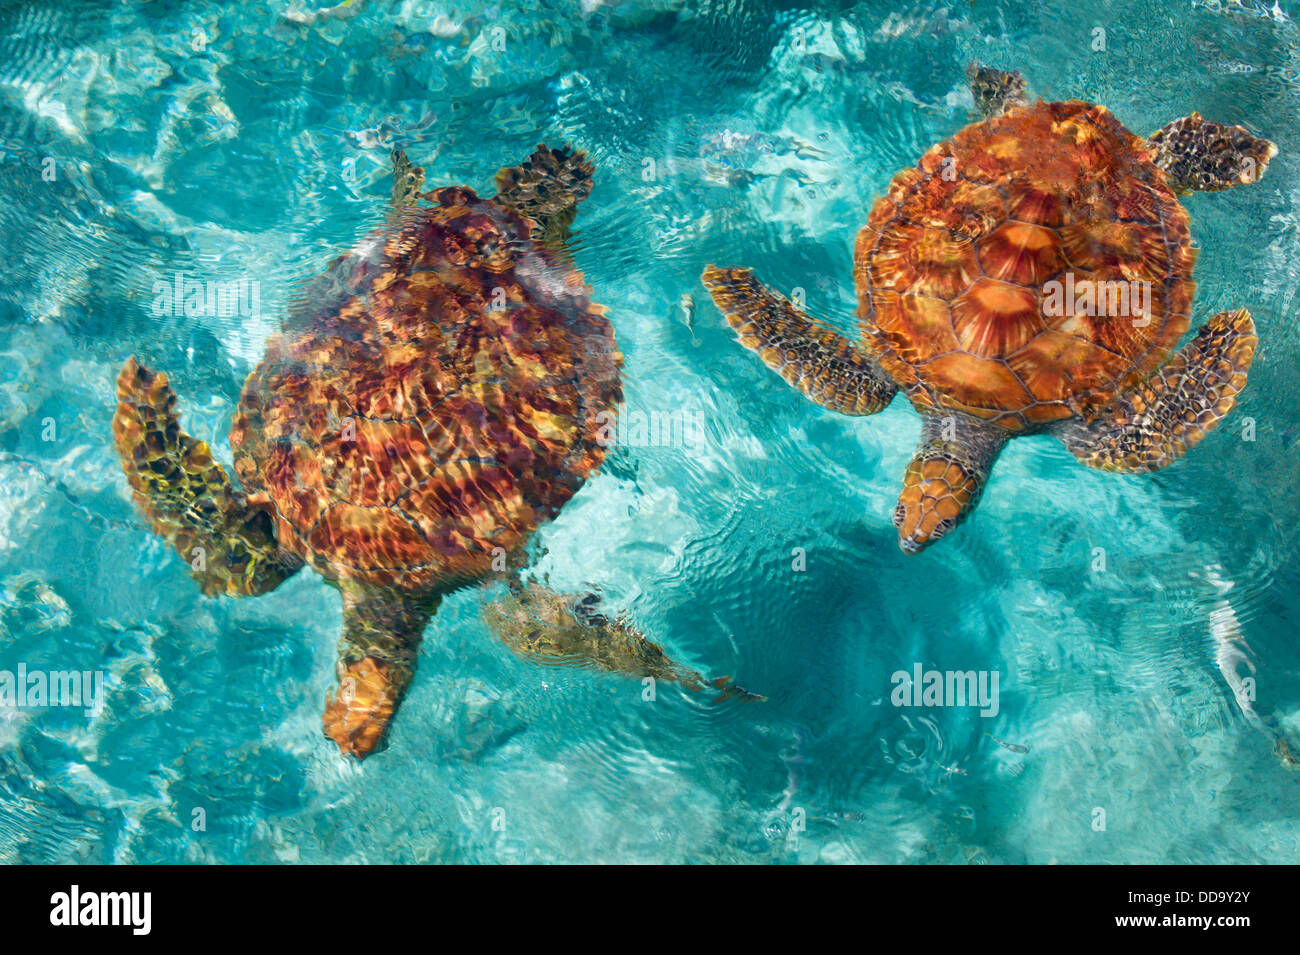 Green Sea Turtles. Bora Bora. French Polynesia. - Stock Image